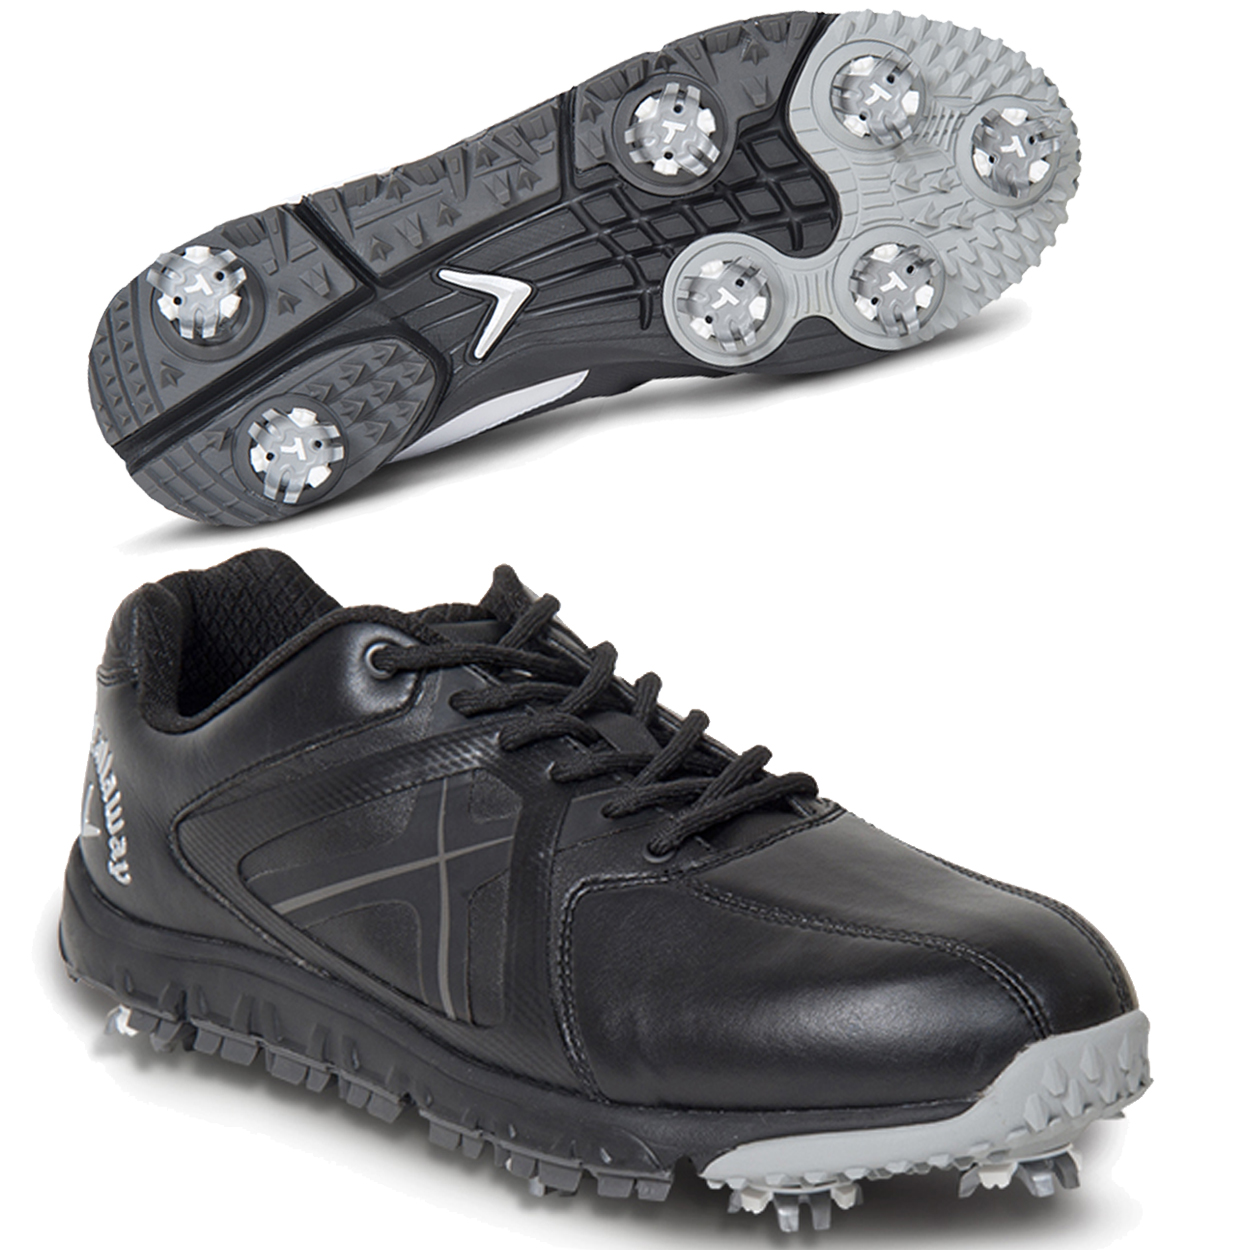 Callaway Mens Balboa Vent Spikeless Golf Shoes Black Grey